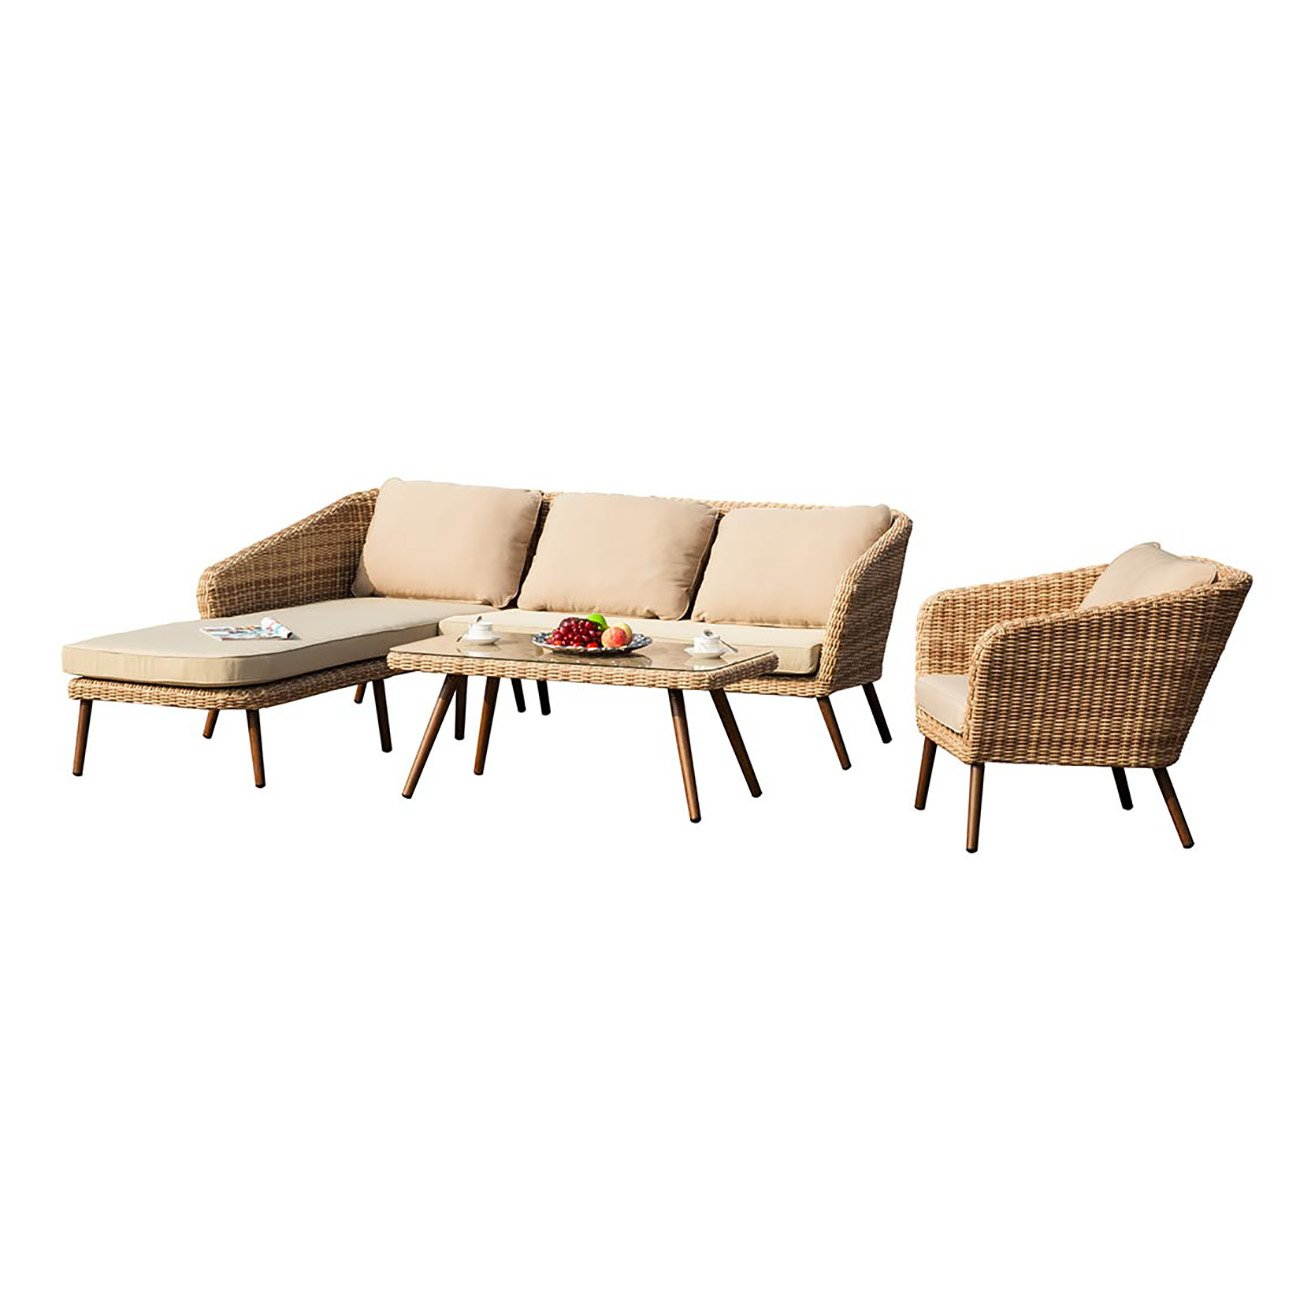 exklusive gartenm bel outliv kenia loungem bel polyrattan 3 tlg loungeset gartenlounge. Black Bedroom Furniture Sets. Home Design Ideas